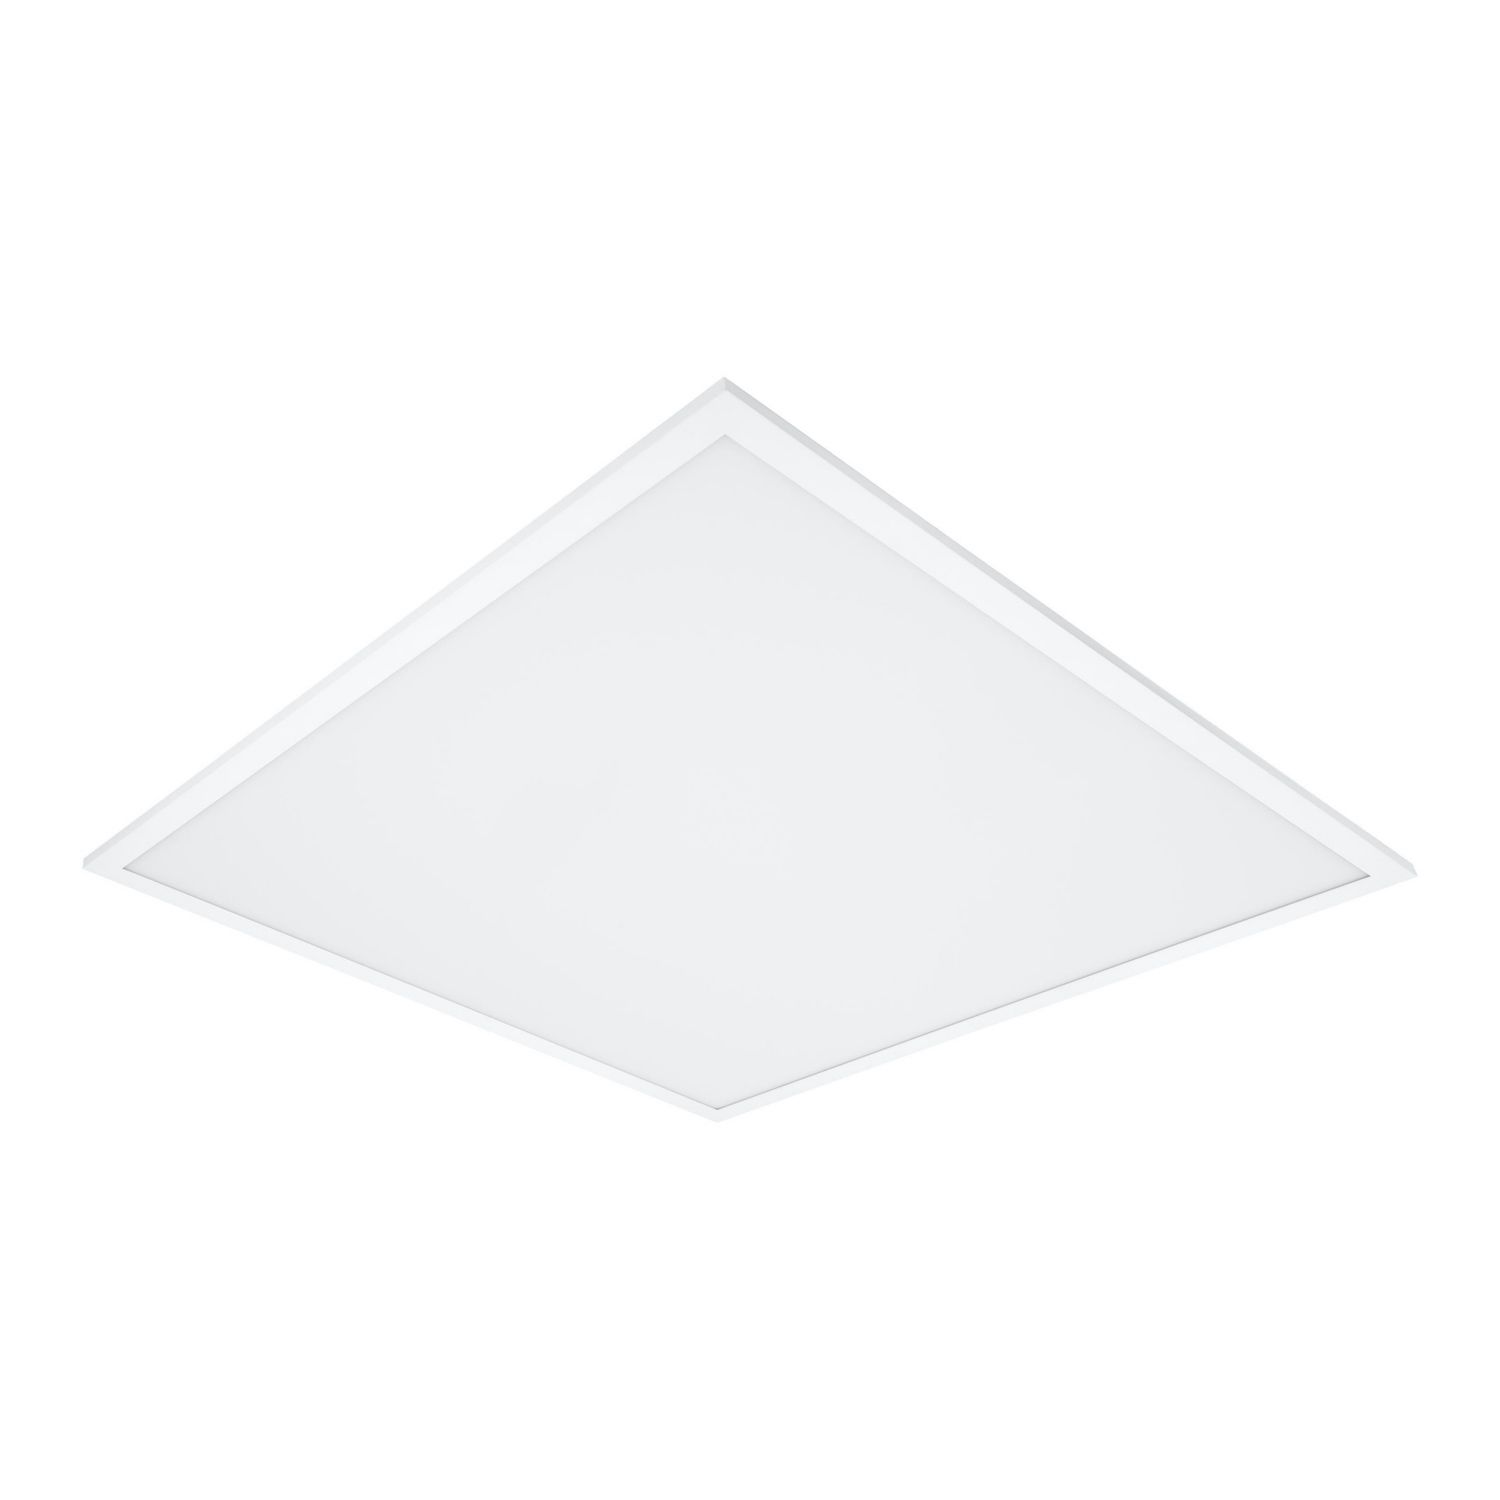 Ledvance LED Panel Performance 60x60cm 3000K 40W | Dali Dimmable - Replacer for 4x18W